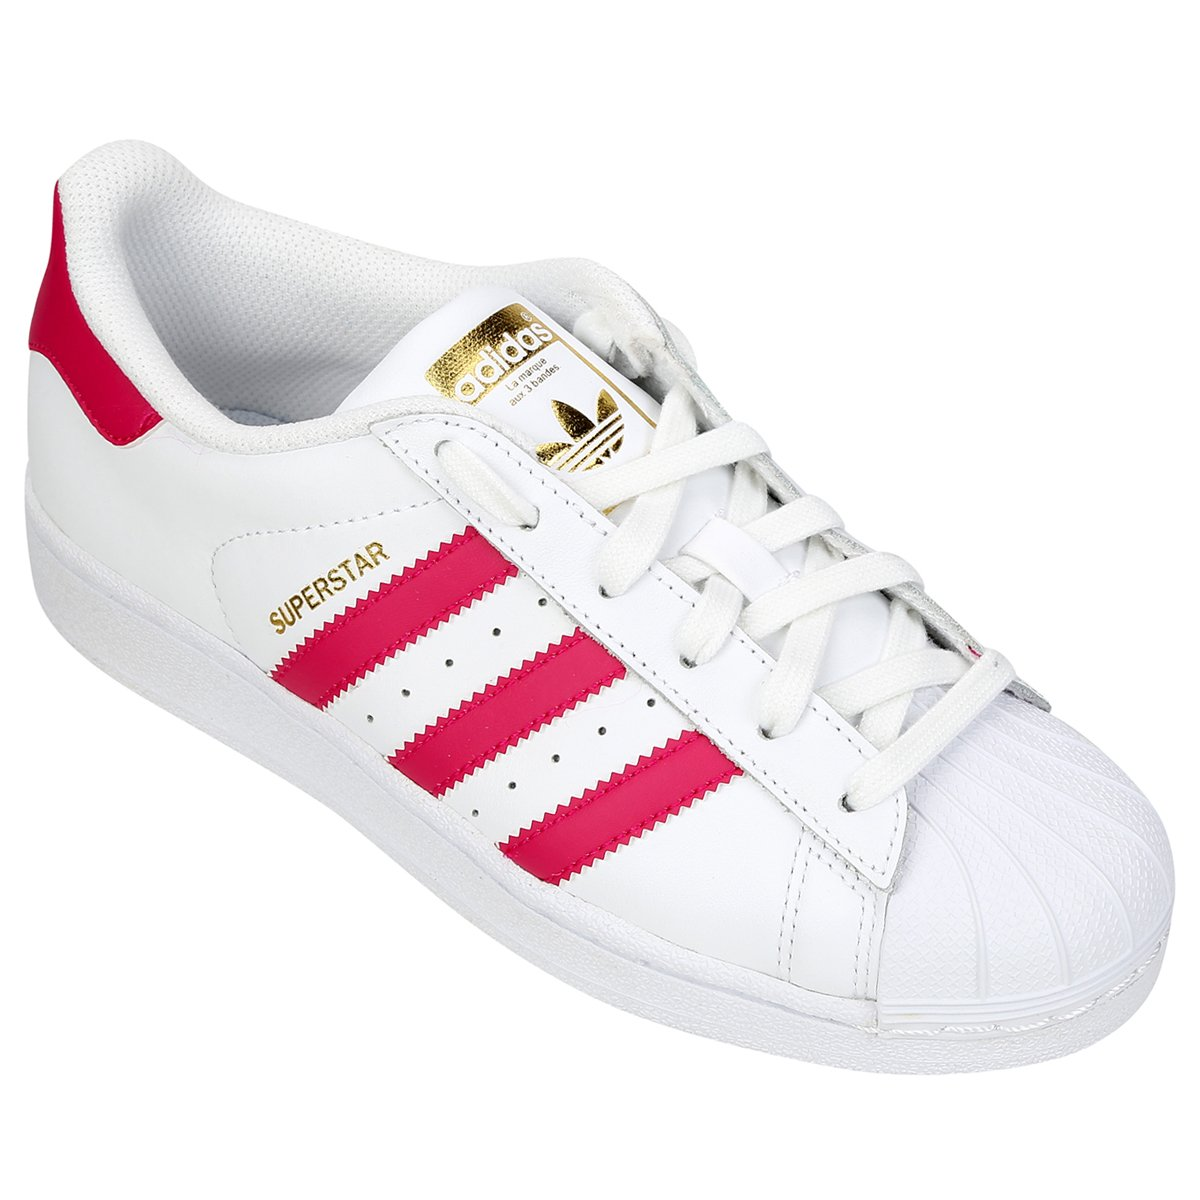 Tênis Adidas Superstar Foundation Infantil Branco e Rosa